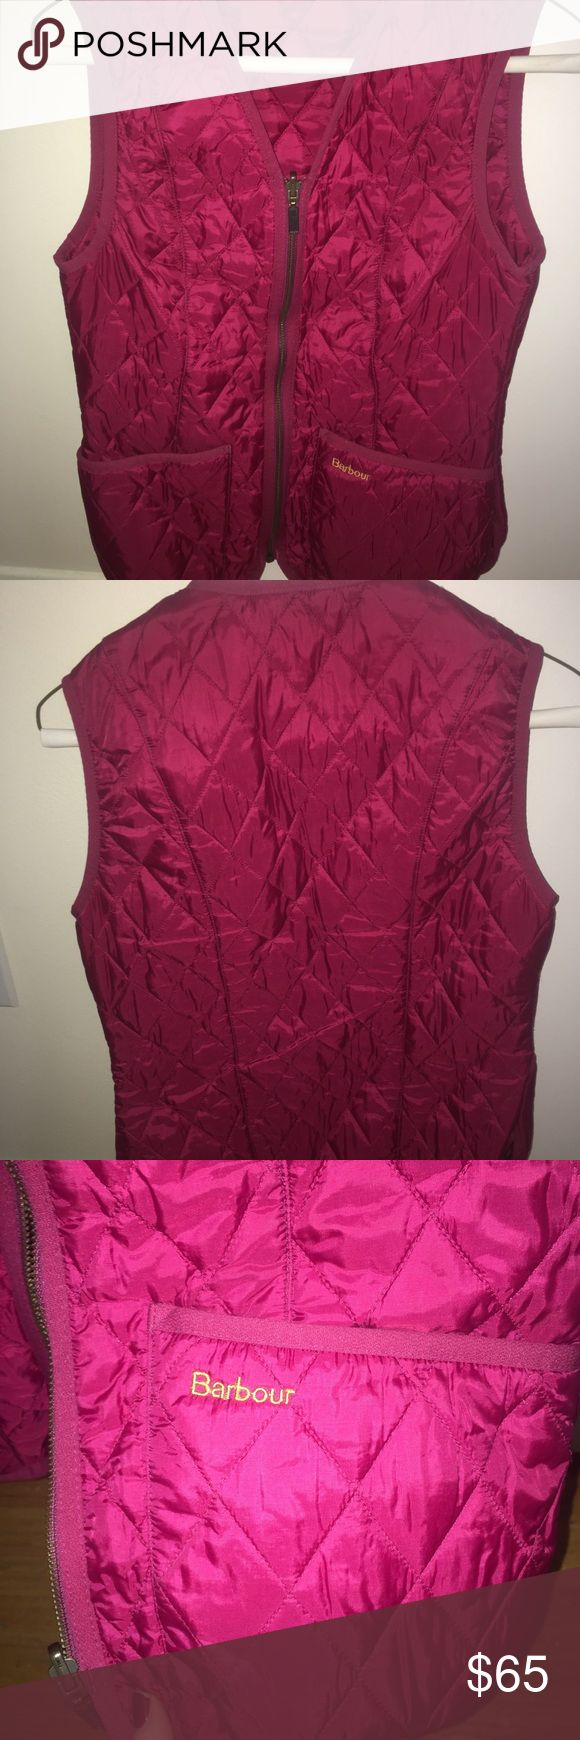 Barbour Vest In perfect condition! Super warm, great for layering in the winter. Open to offers! Barbour Jackets & Coats Vests